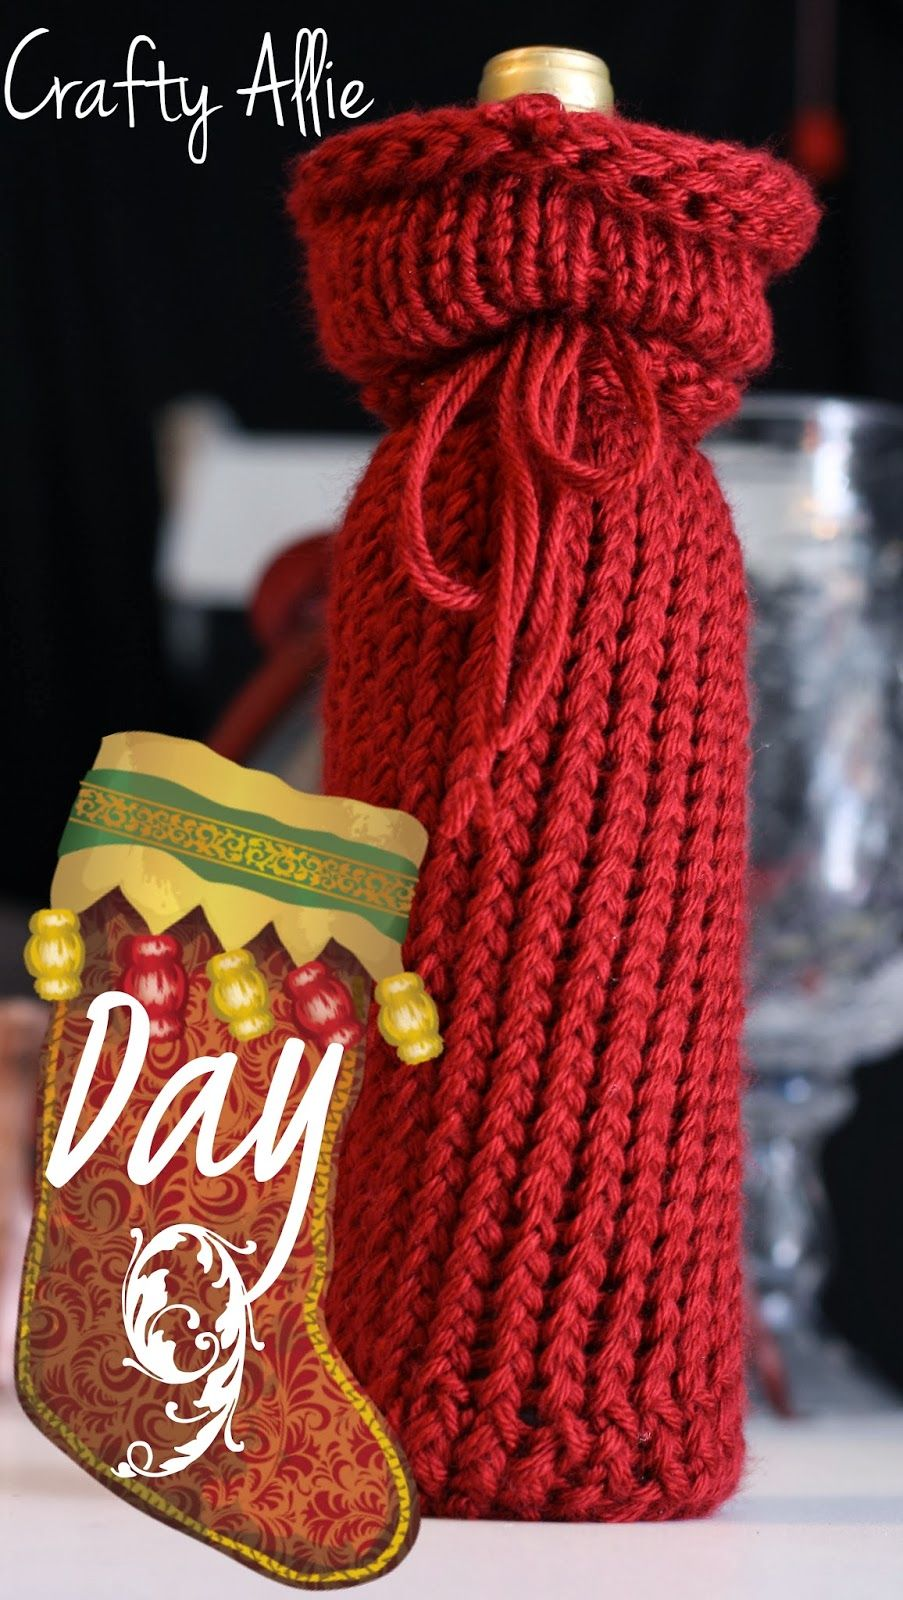 12 Days Of Christmas Day 9 Knitted Wine Bottle Cover Loom Knitting Projects Wine Bag Pattern Christmas Knitting Patterns Free